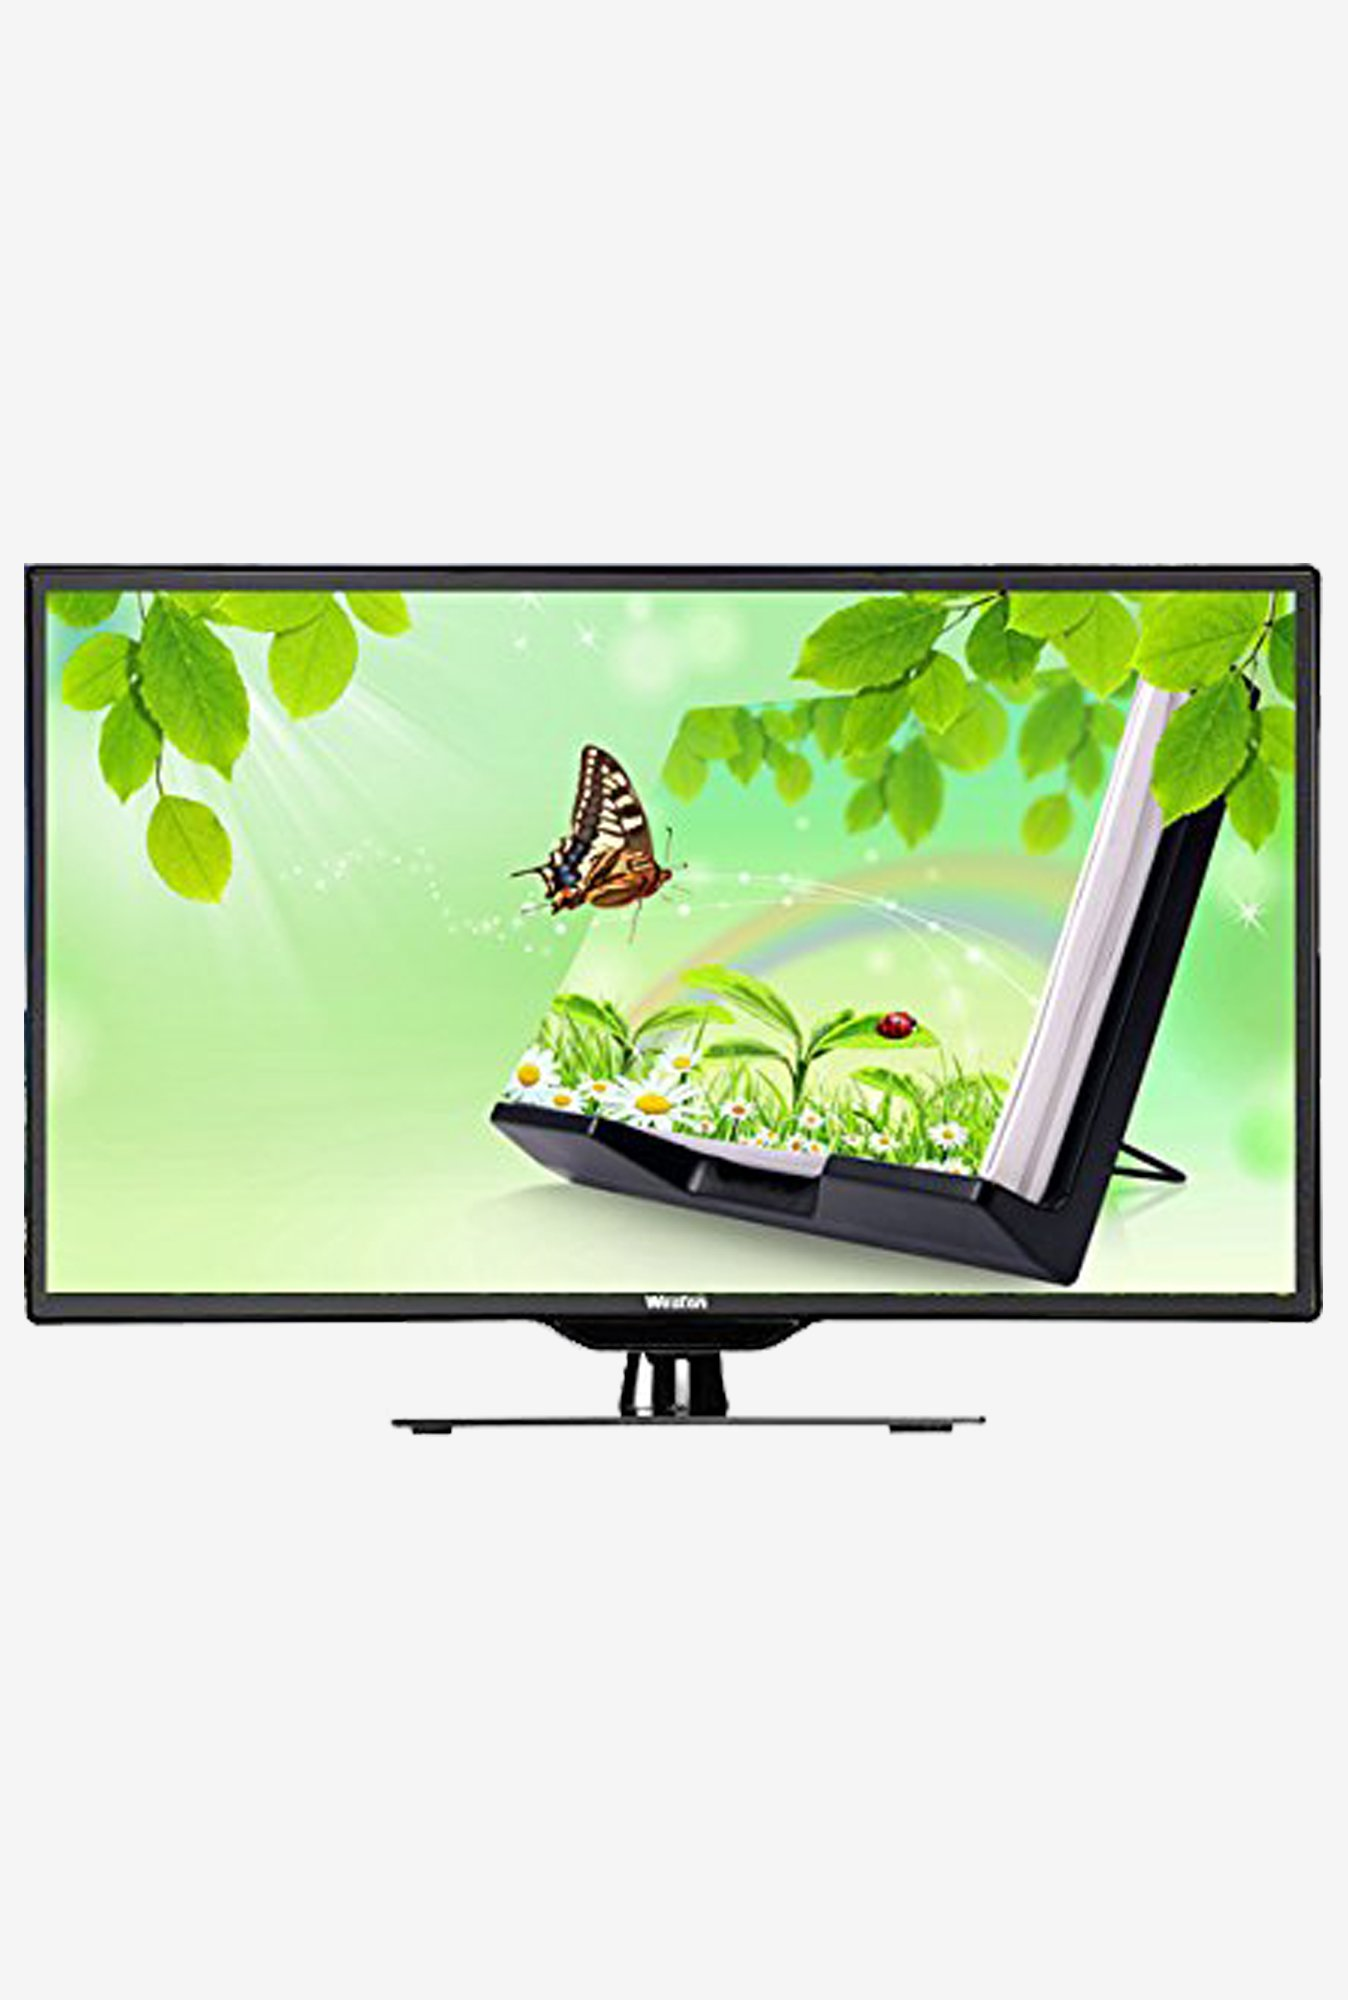 Weston WEL-4000 99 Cm (39 Inch) HD Ready slim LED Television